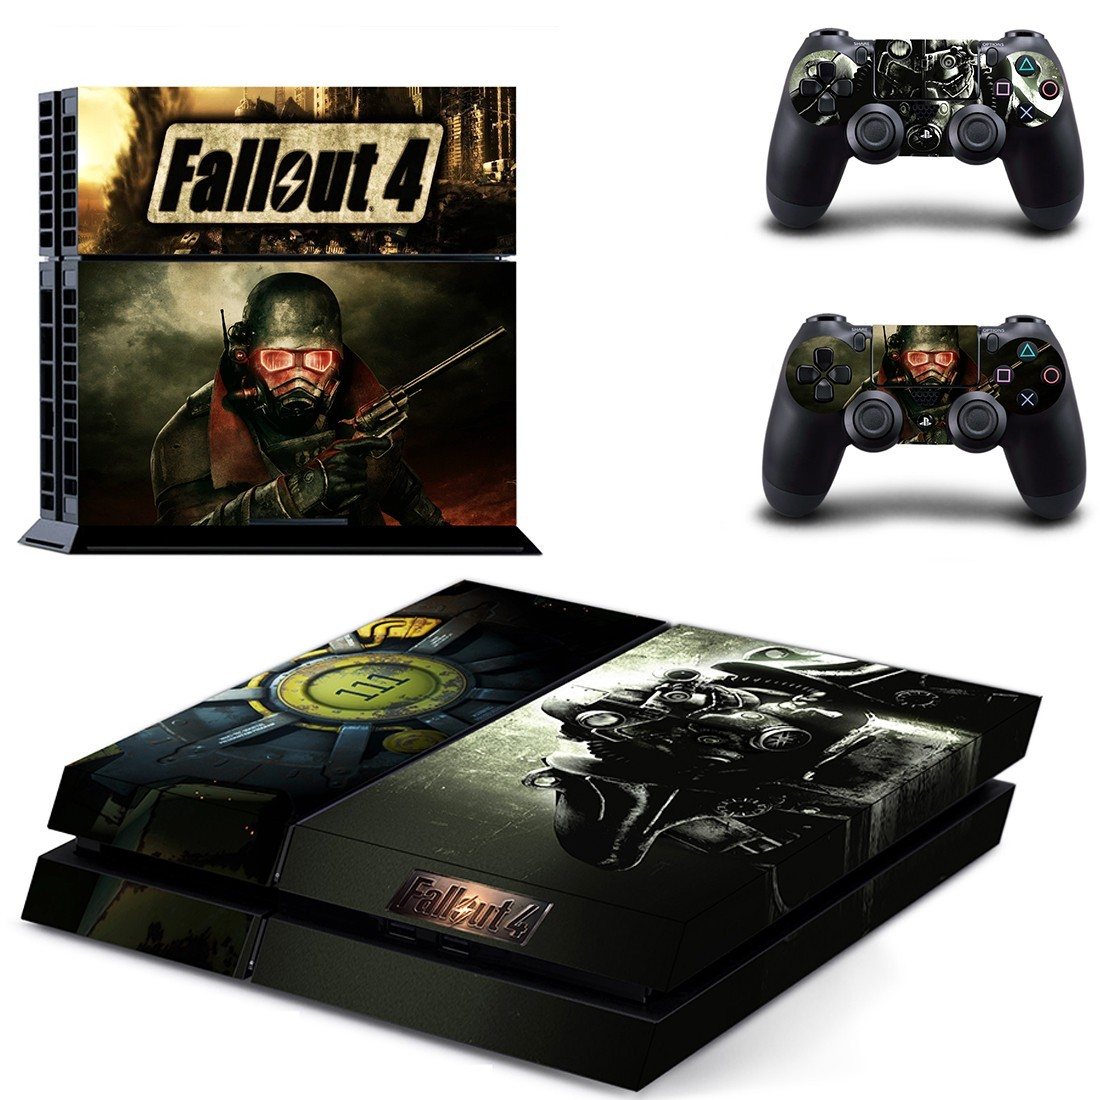 Fallout 4 ps4 skin decal for console and controllers faceplates decals stickers - What consoles will fallout 4 be on ...